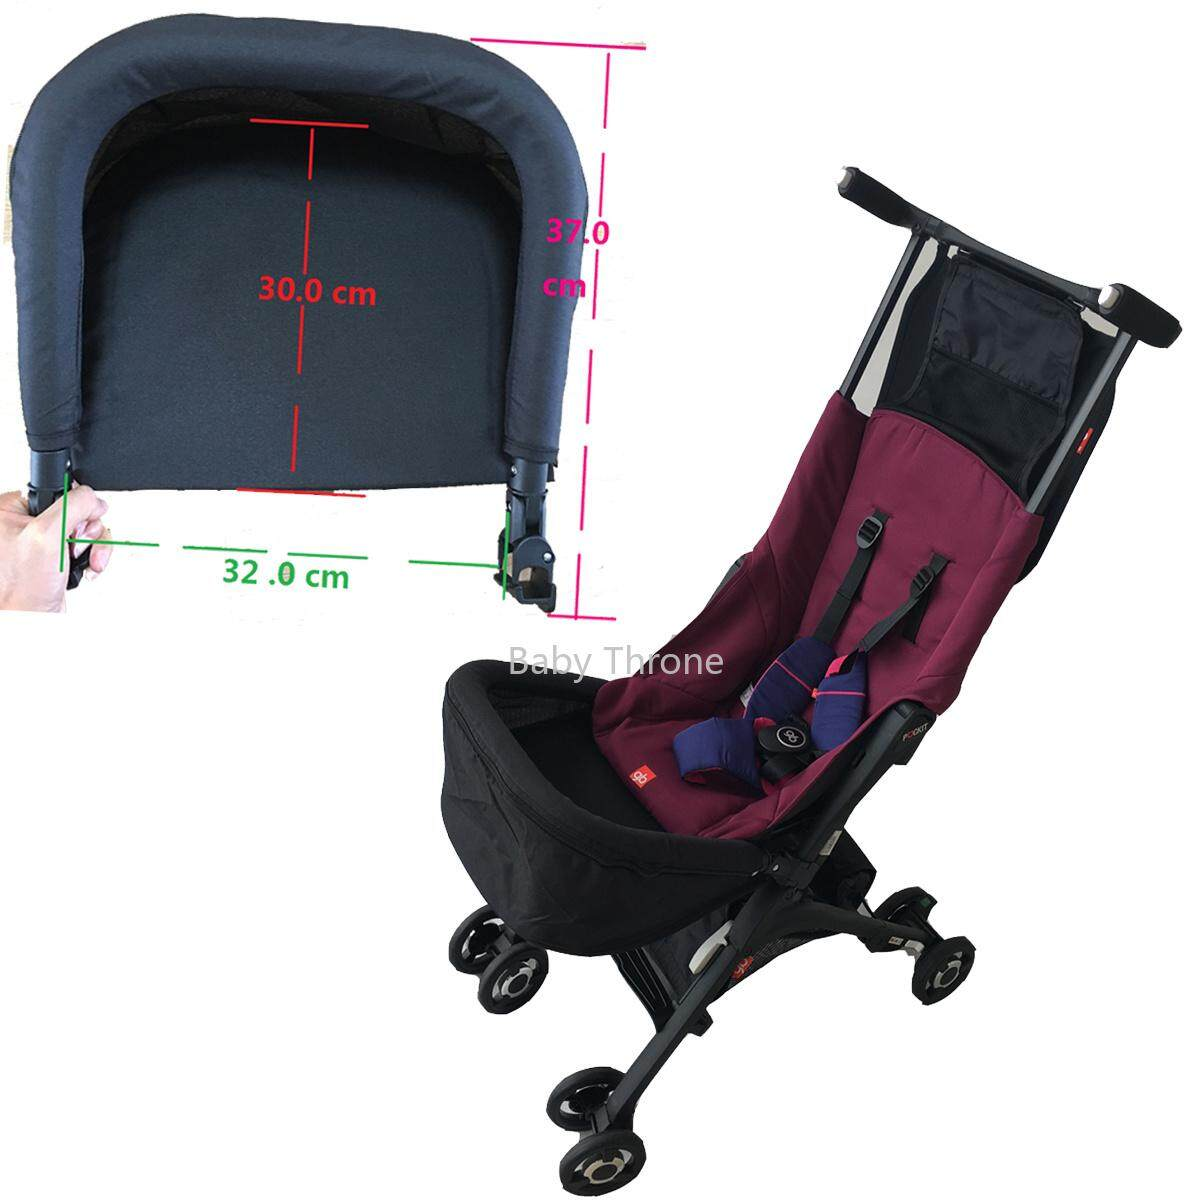 Baby Stroller Accessories Extend Foot board fit Goodbaby POCKIT 2S 3S C3 PLUS 18CN baby pram Foot Rest Feet Extension 32cm Footmuff (Hight quality)